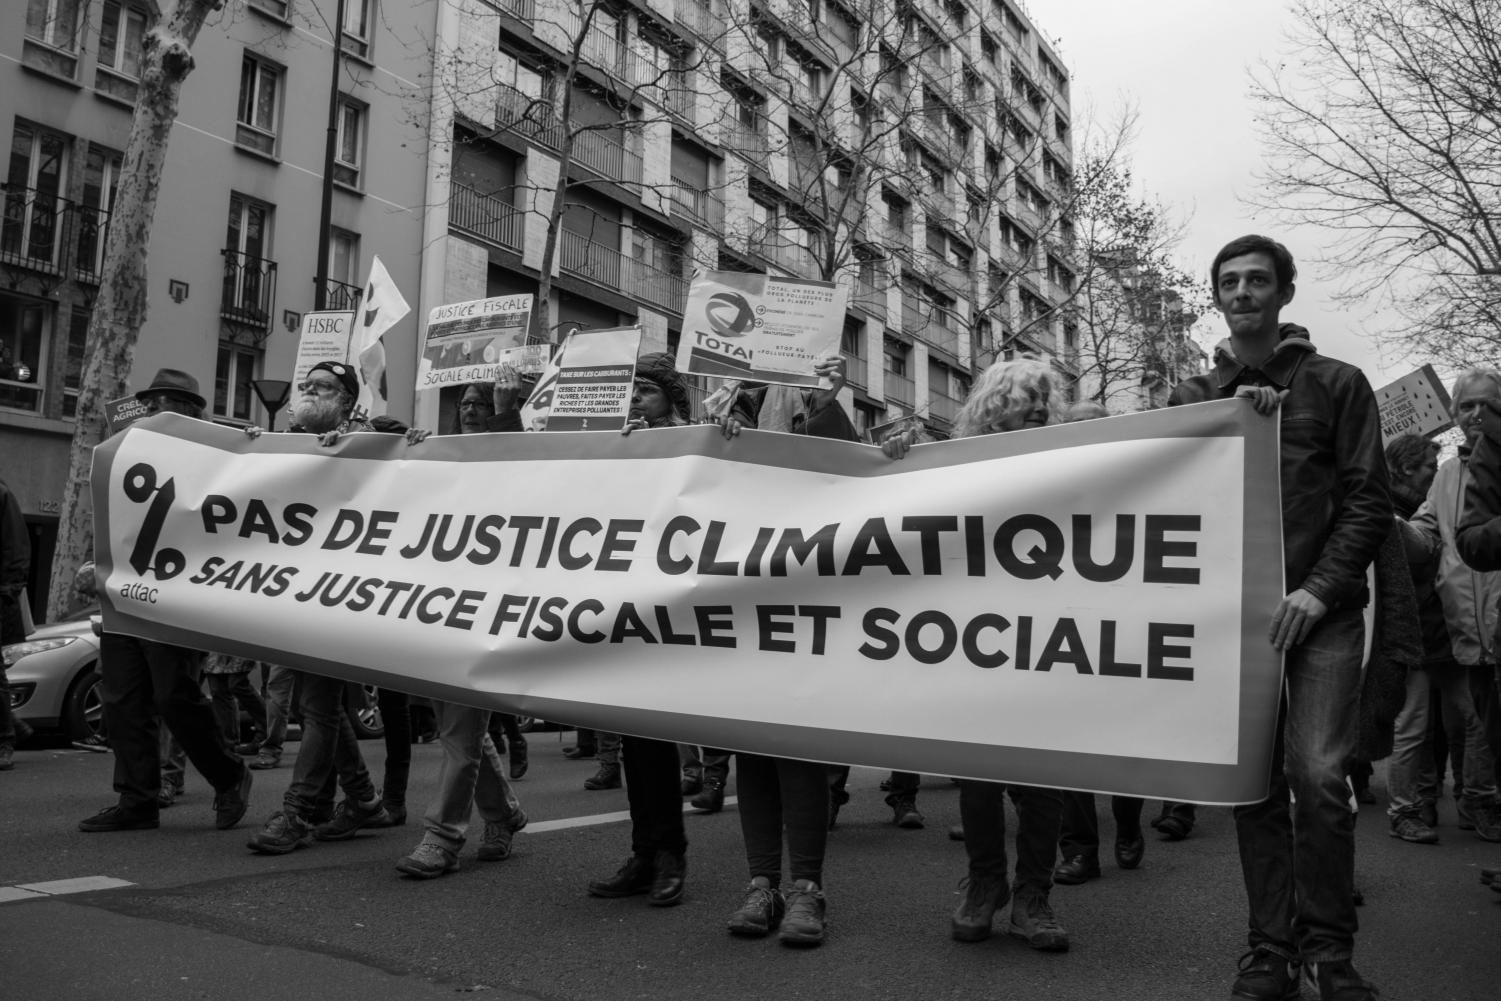 Protesters march against climate change in Paris on Dec. 8. Columnist Agastya argues the march demonstrates much more than environmental awareness.